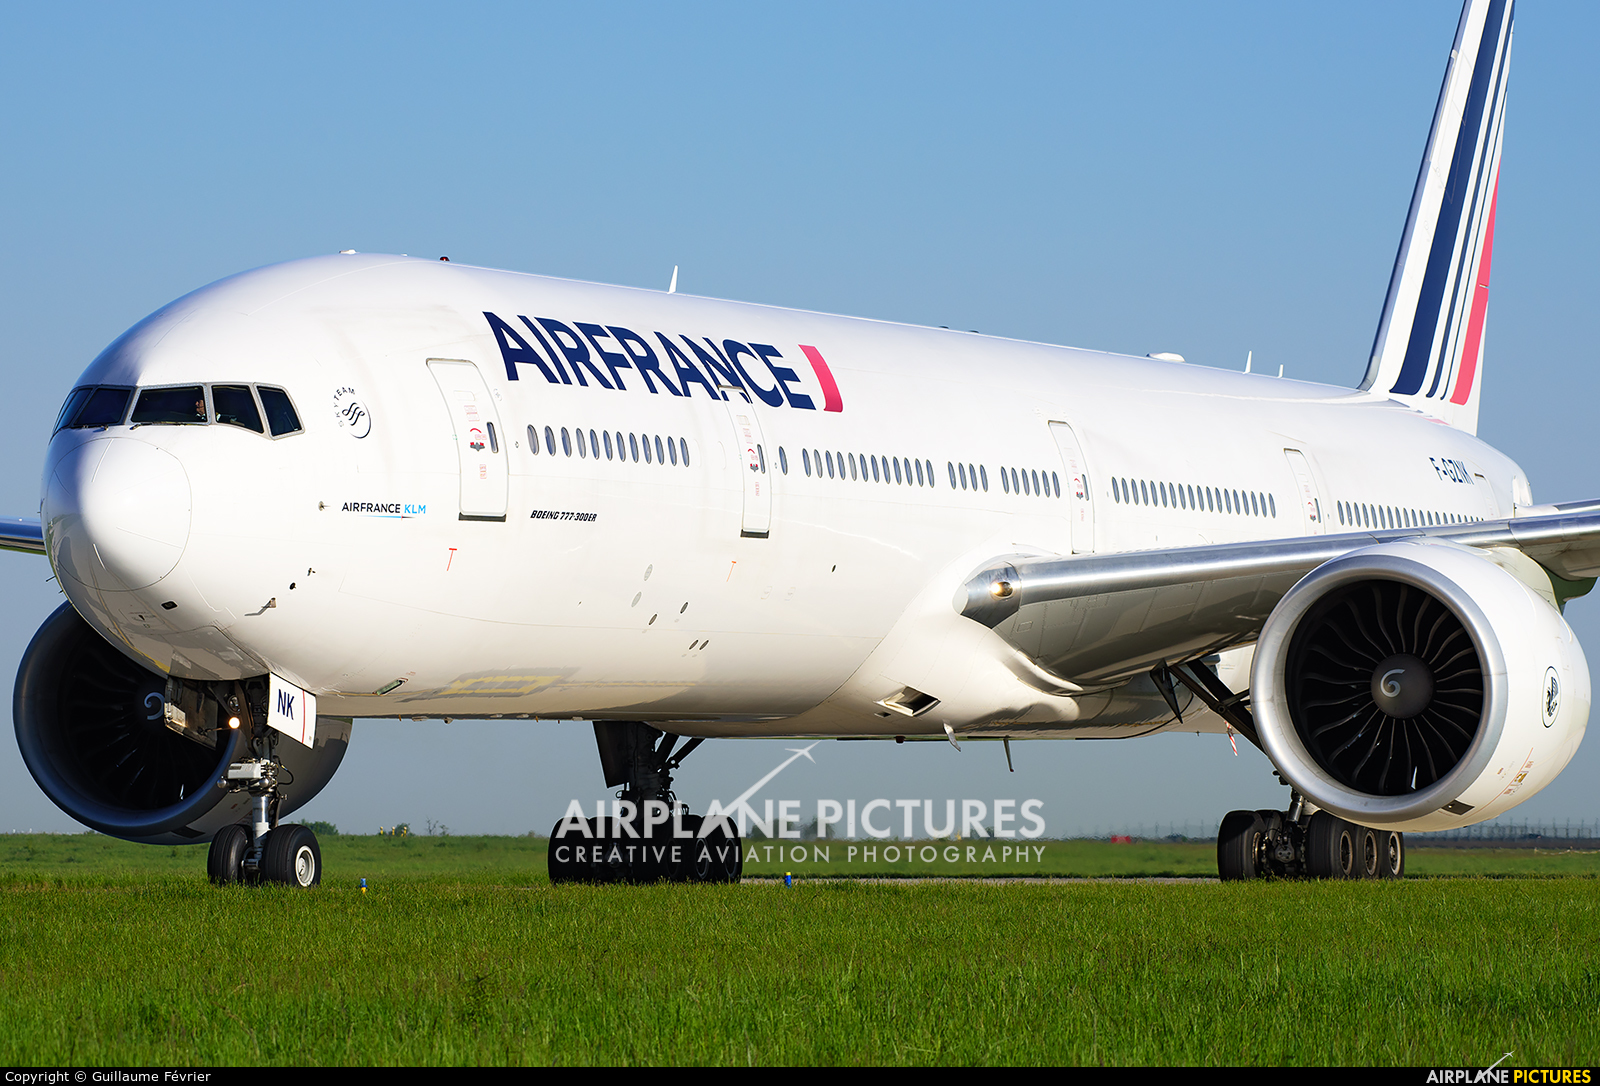 Air France F-GZNK aircraft at Paris - Charles de Gaulle